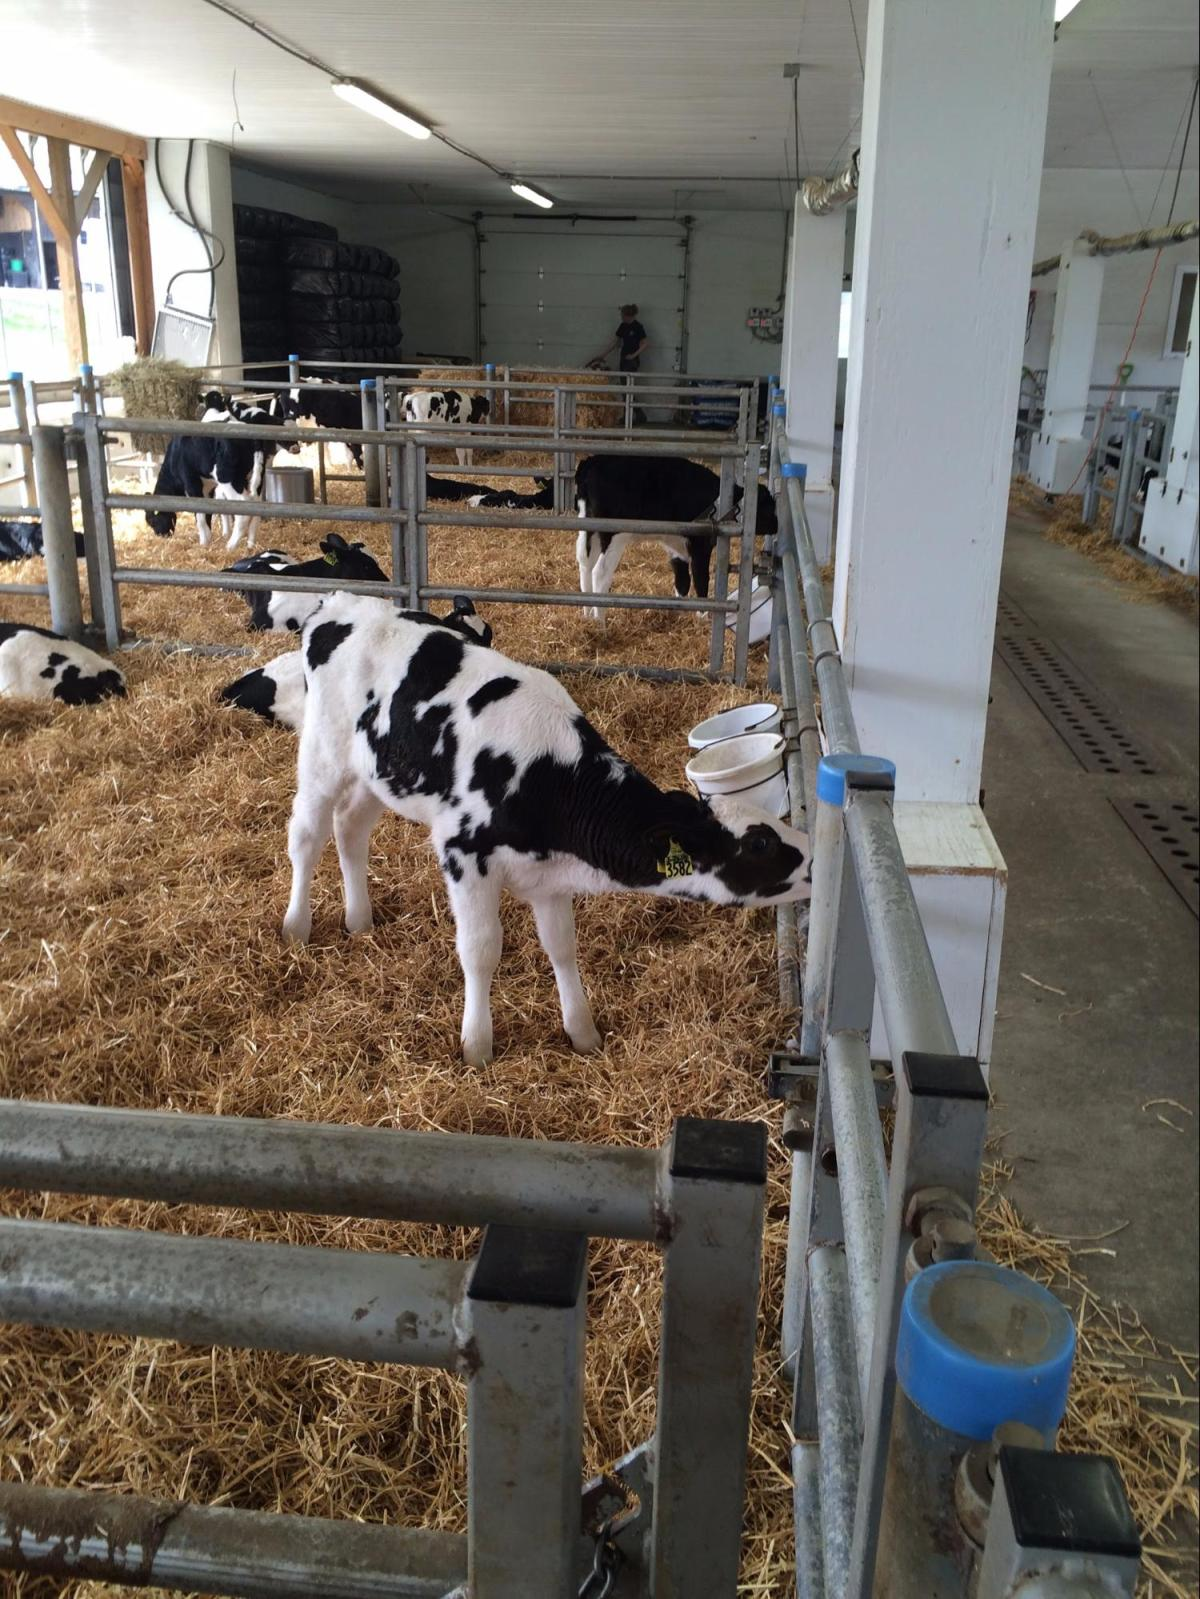 A calf drinks milk in Fairmont's new calf barn. Fresh whole milk in provided 24/7